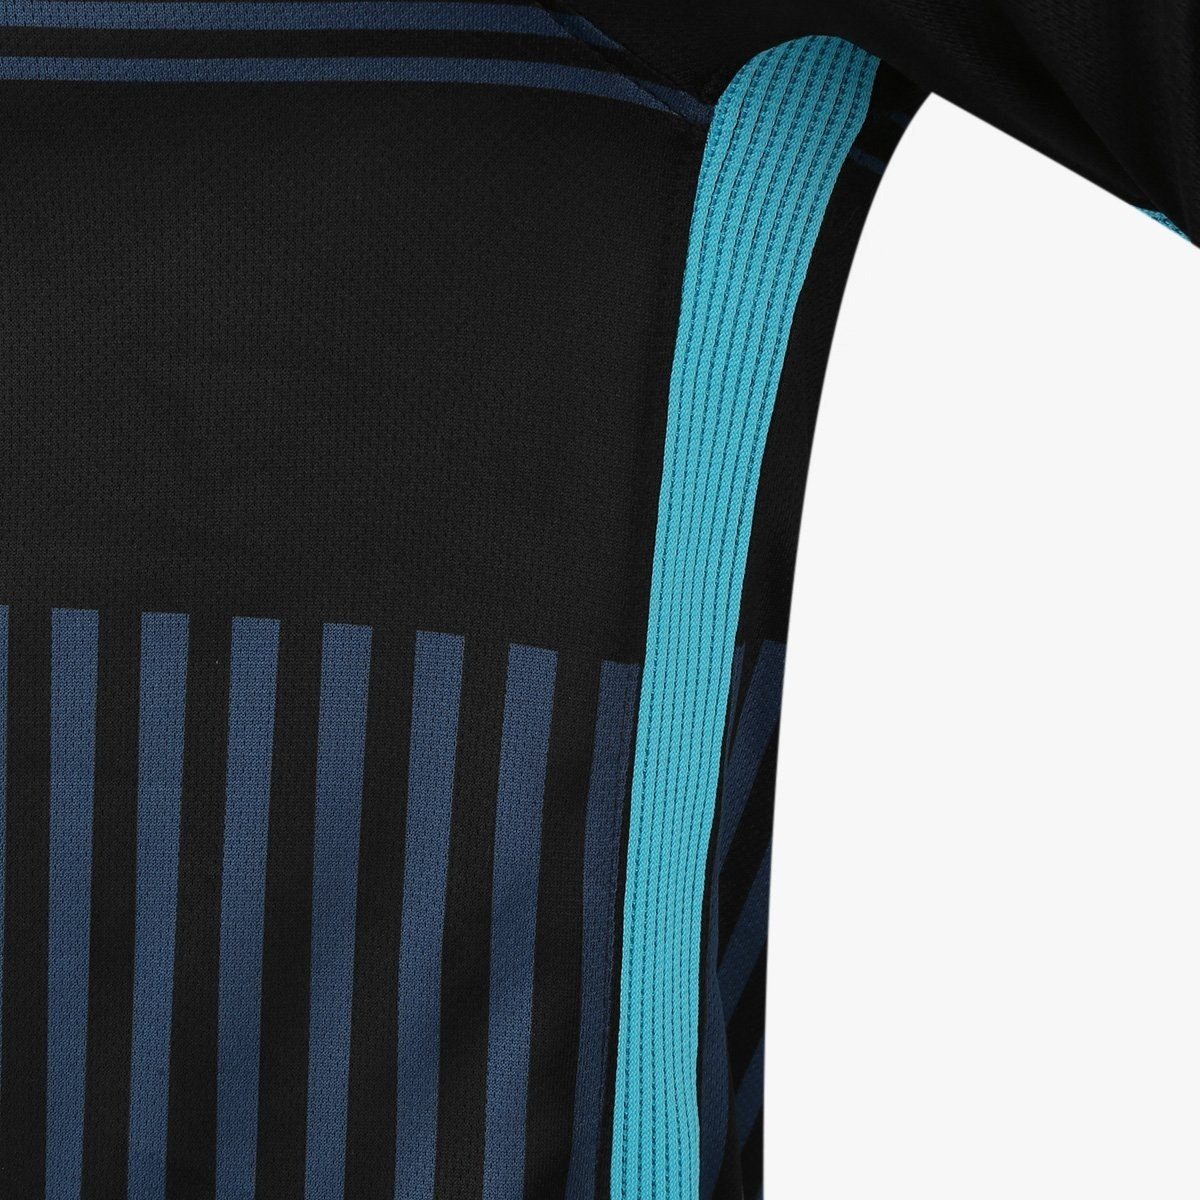 07049c3ccefac camiseta nike boca juniors alternativa 3 match - 2018. Cargando zoom.